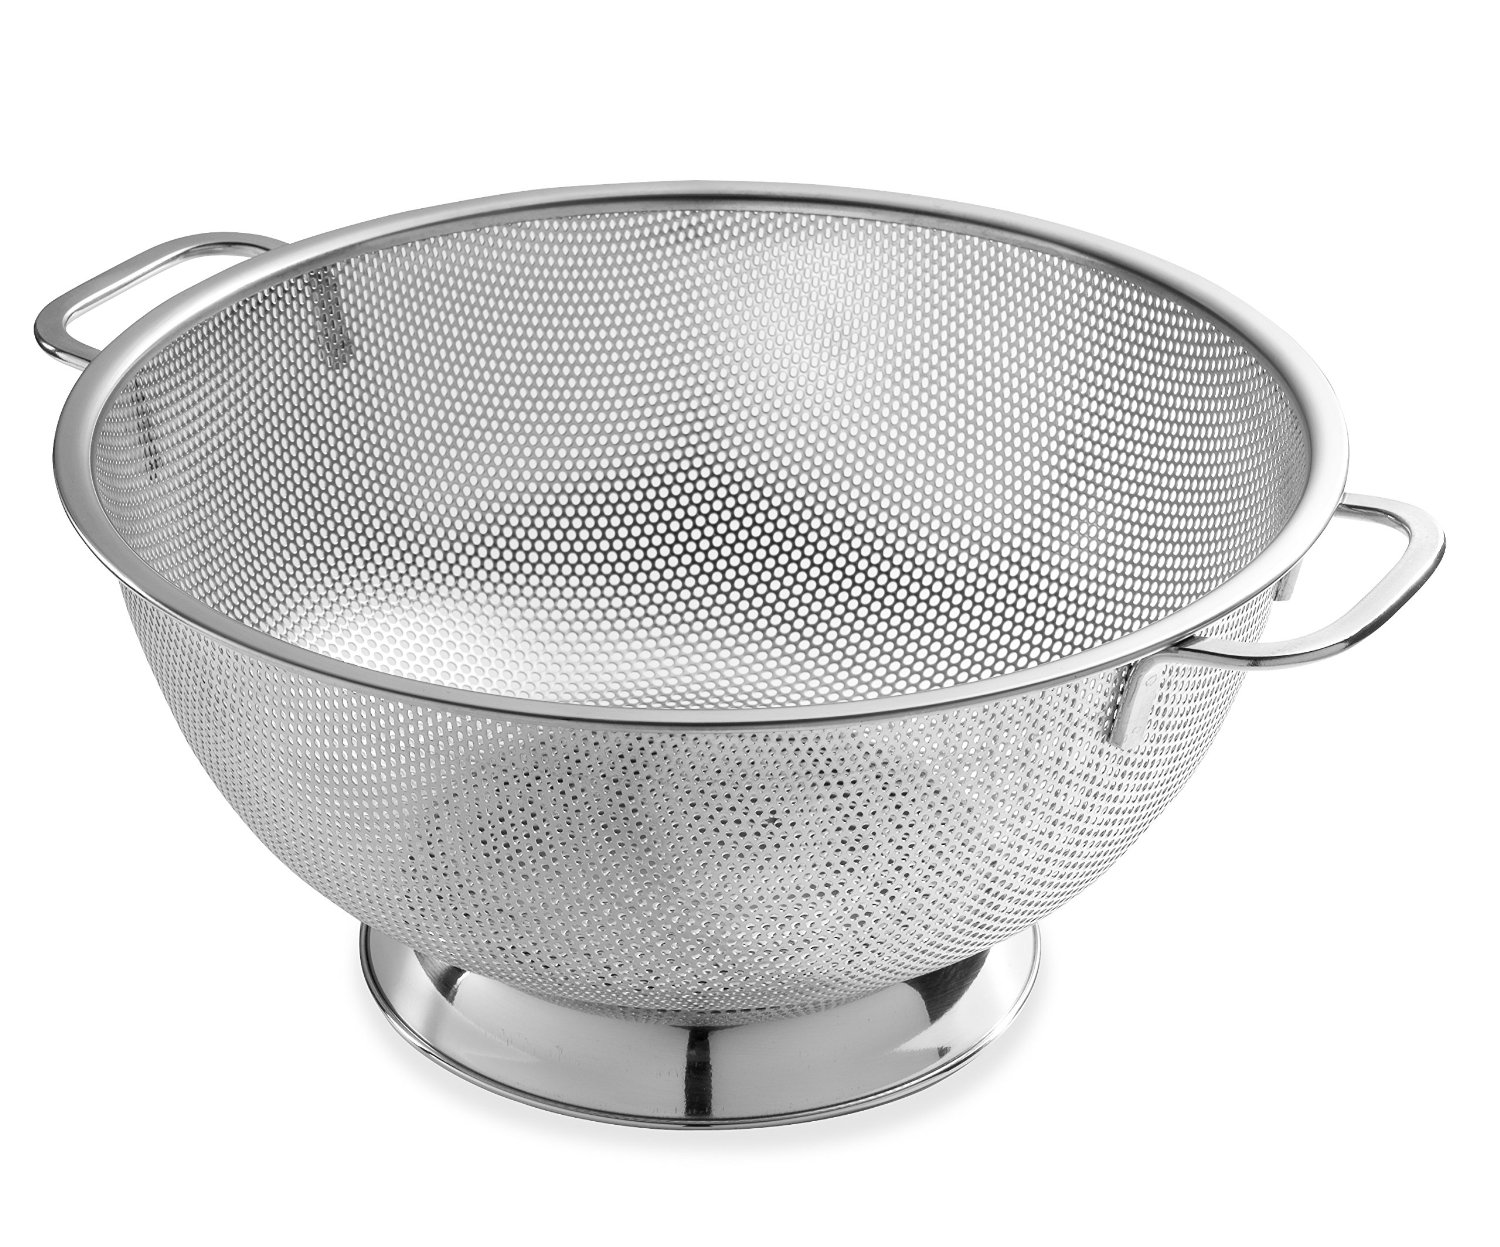 stainless-steel-colander